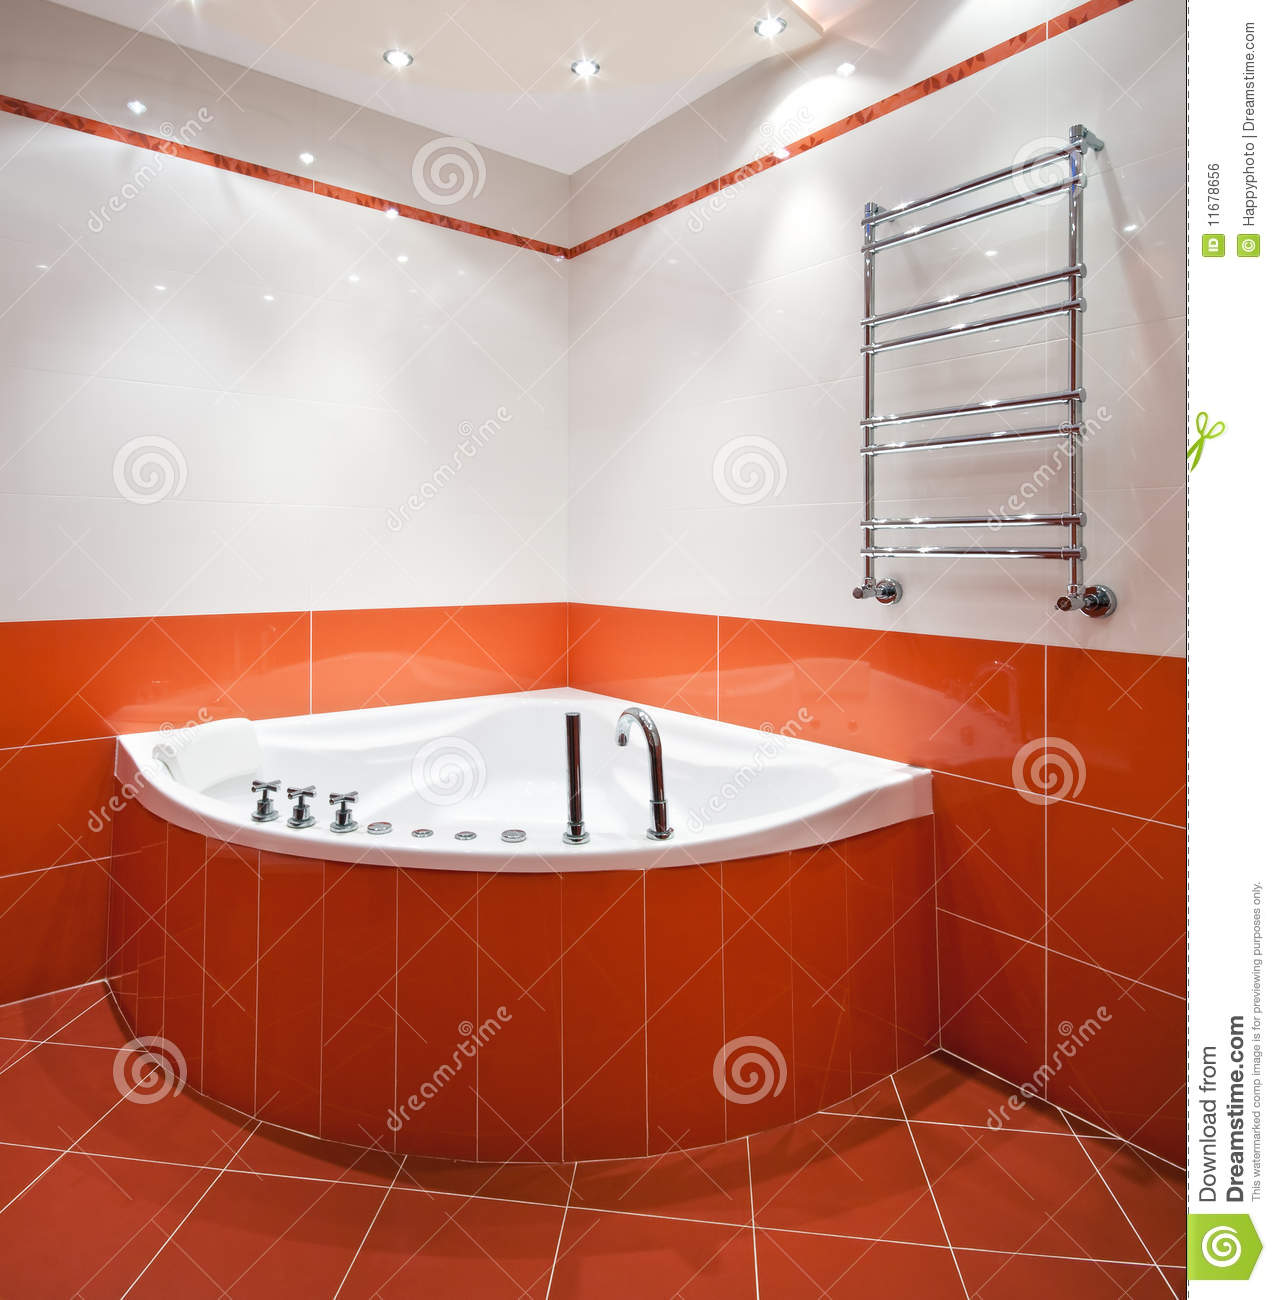 Orange Bathroom Bathroom In Orange And White Colors Royalty Free Stock Image .